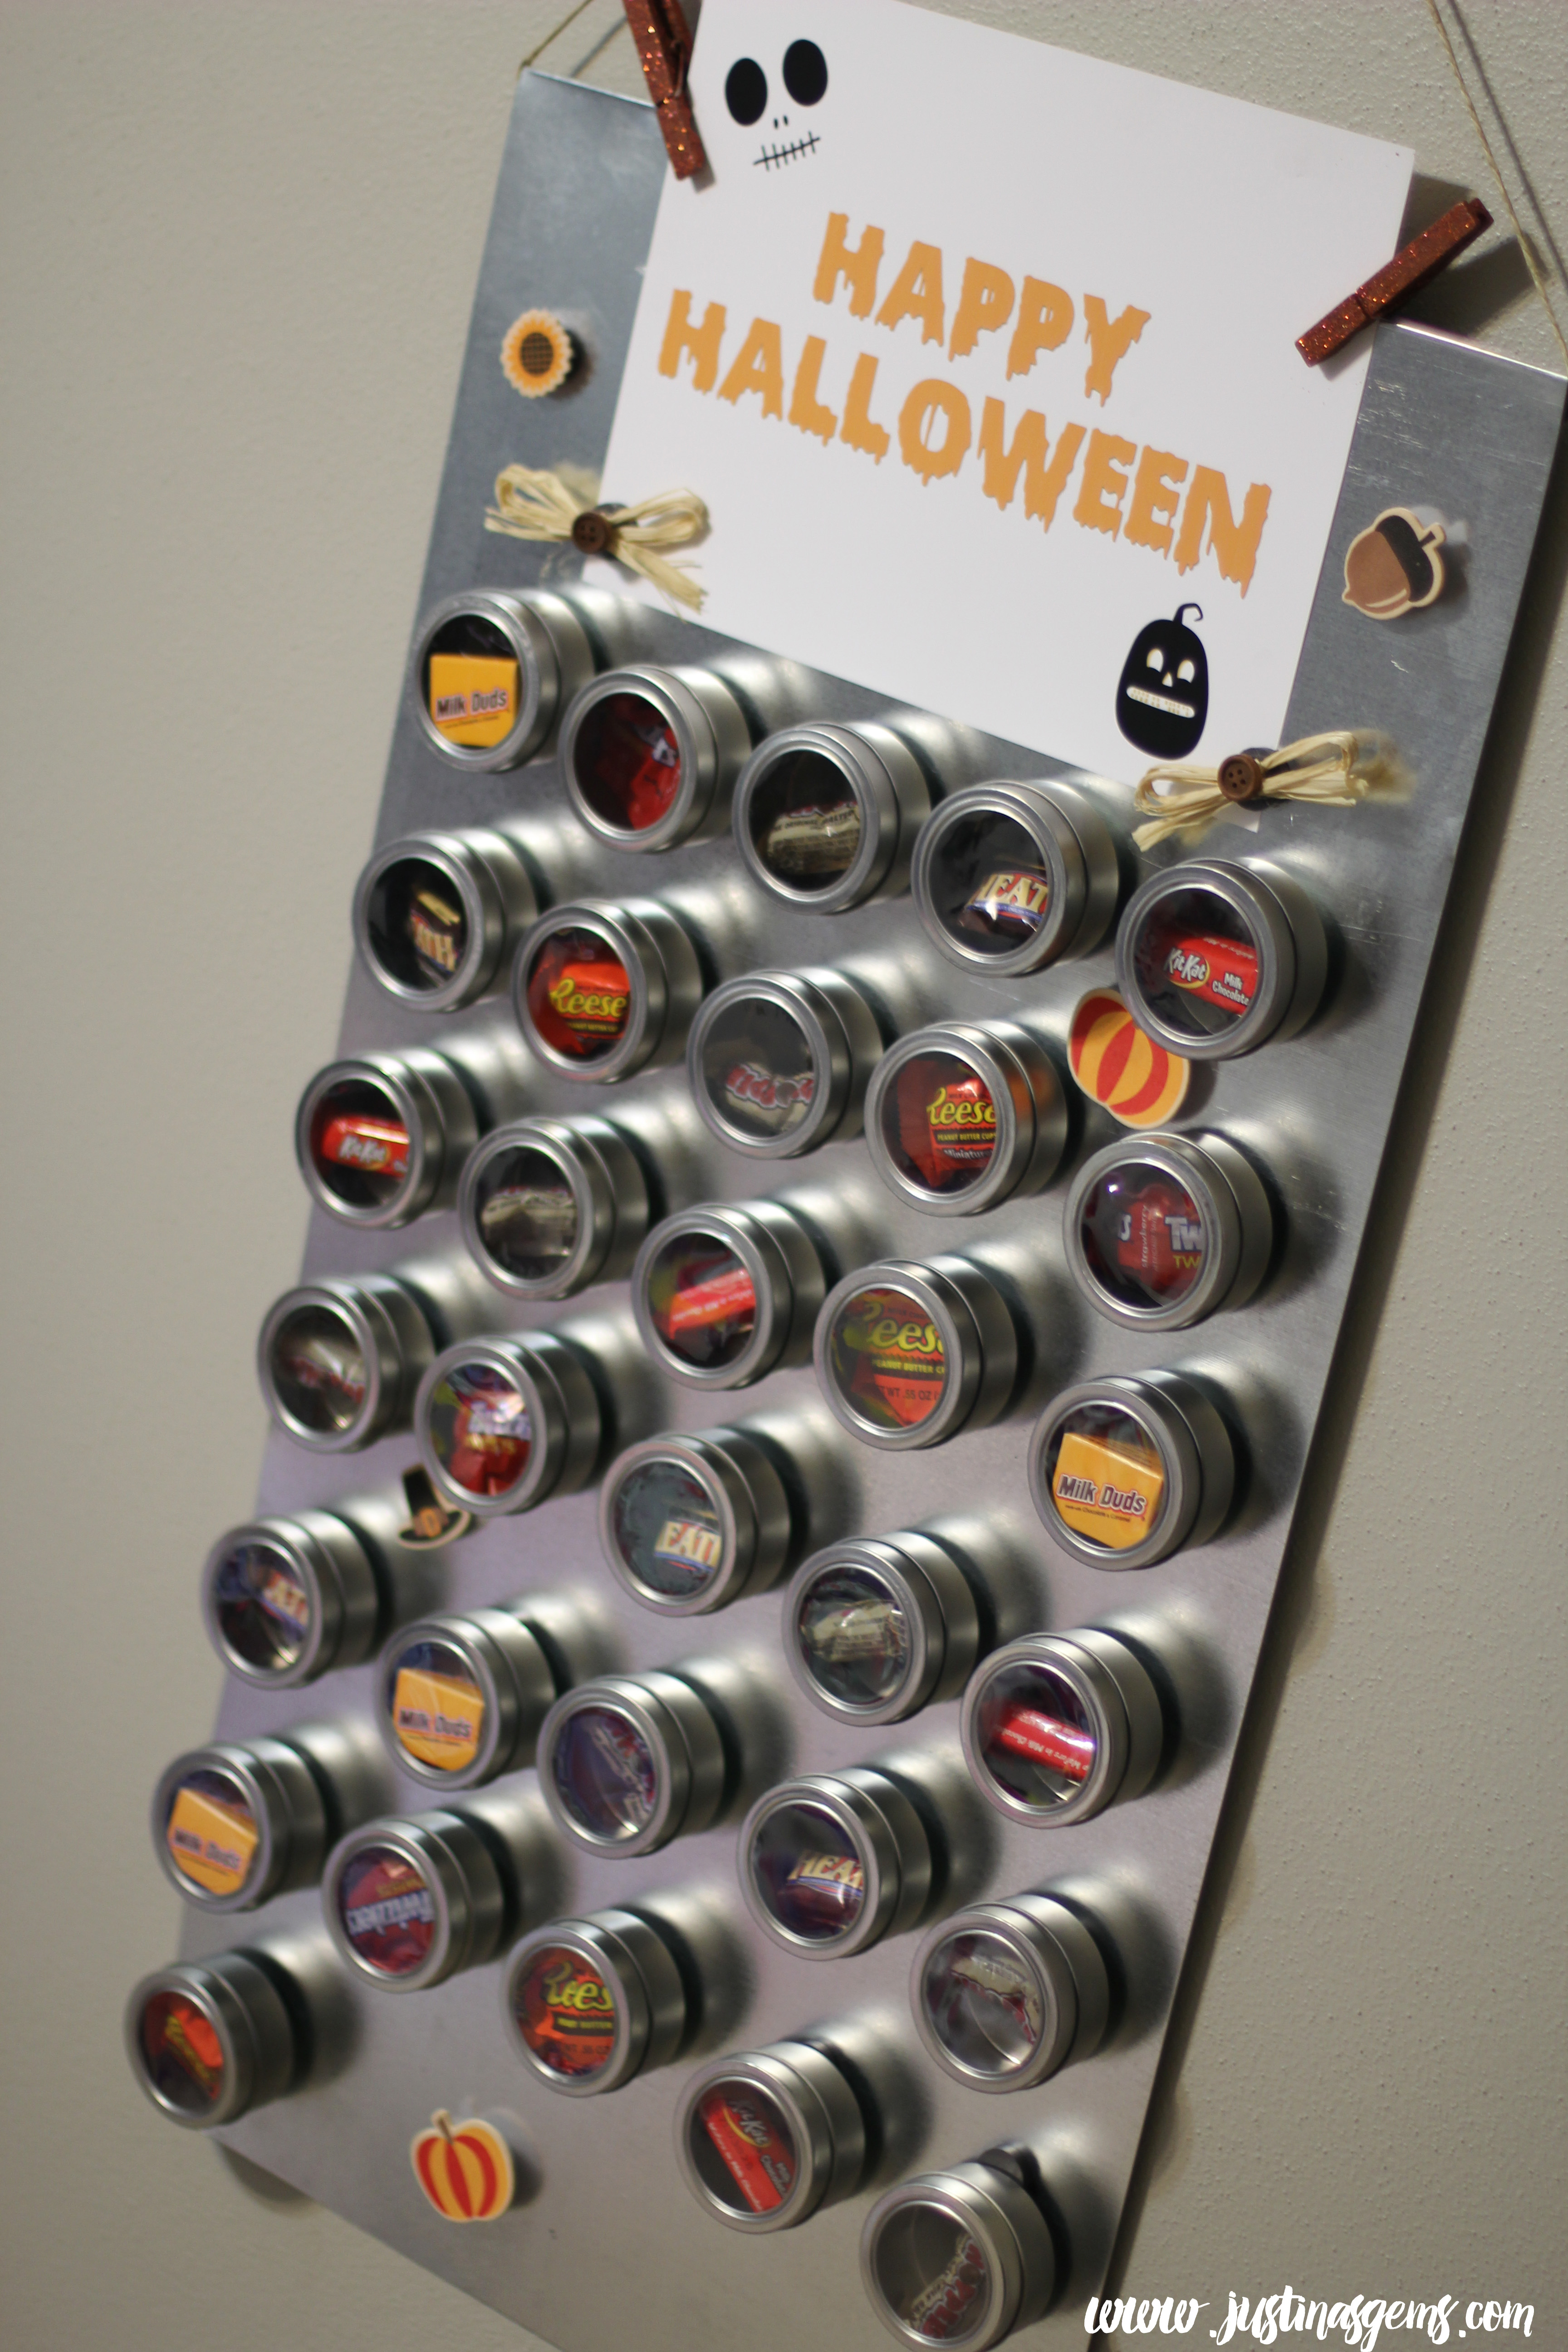 Diy halloween advent calendar justinas gems halloween advent calendar 2 halloween advent calendar diy solutioingenieria Gallery